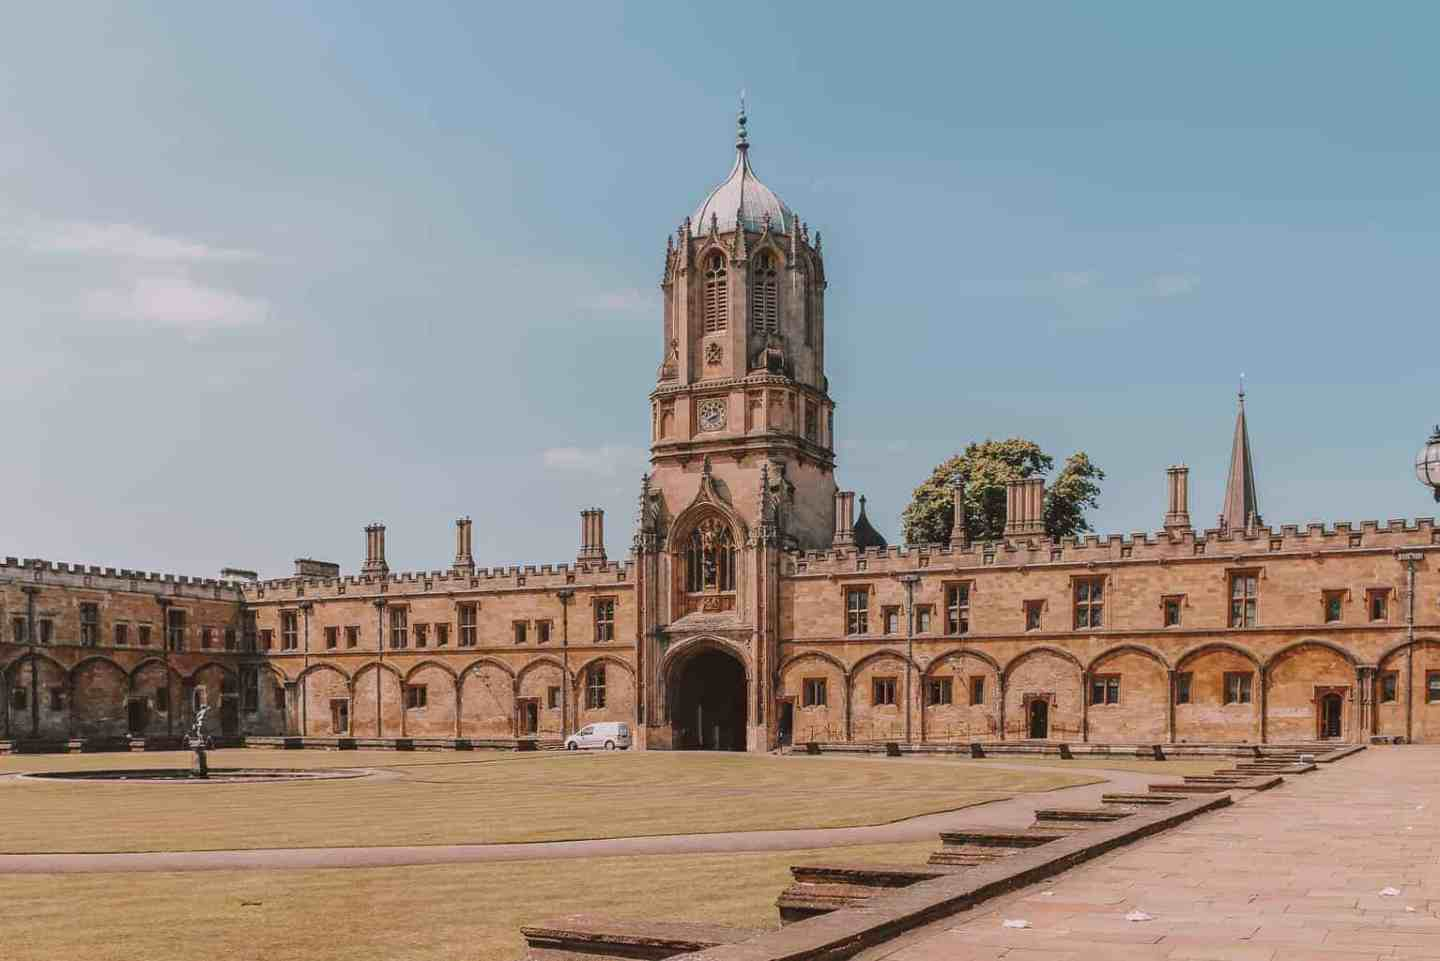 Christ Church - 10 Most Beautiful Colleges at Oxford University According to a Student